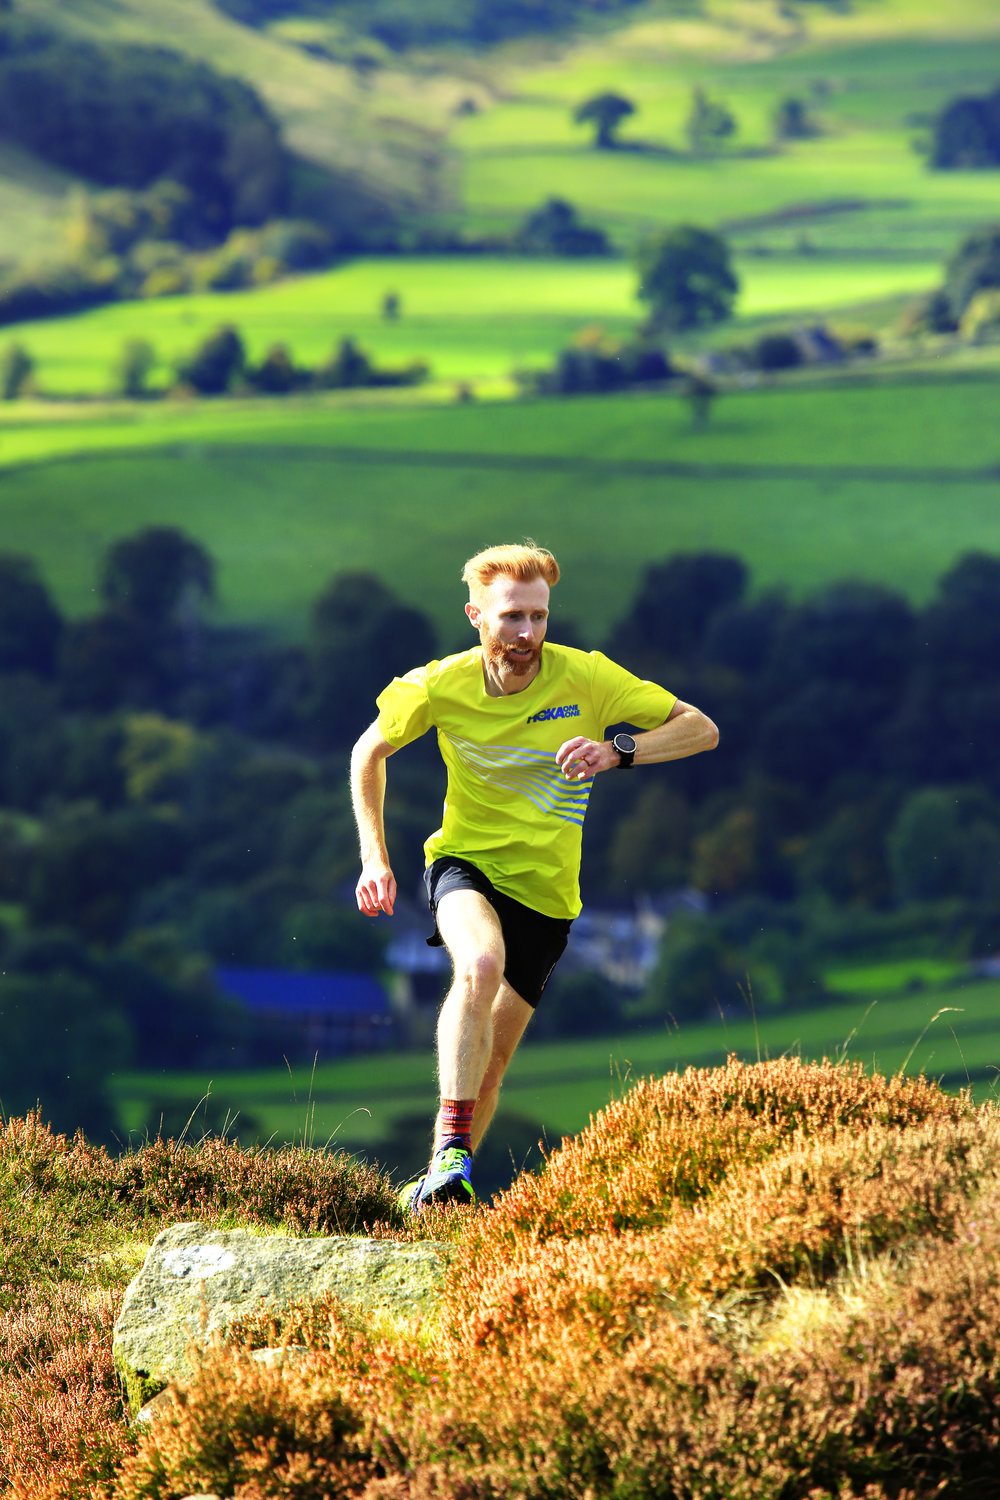 Marcus Scotney on Curbar Edge in the Peak District (pic: Tom Bailey)